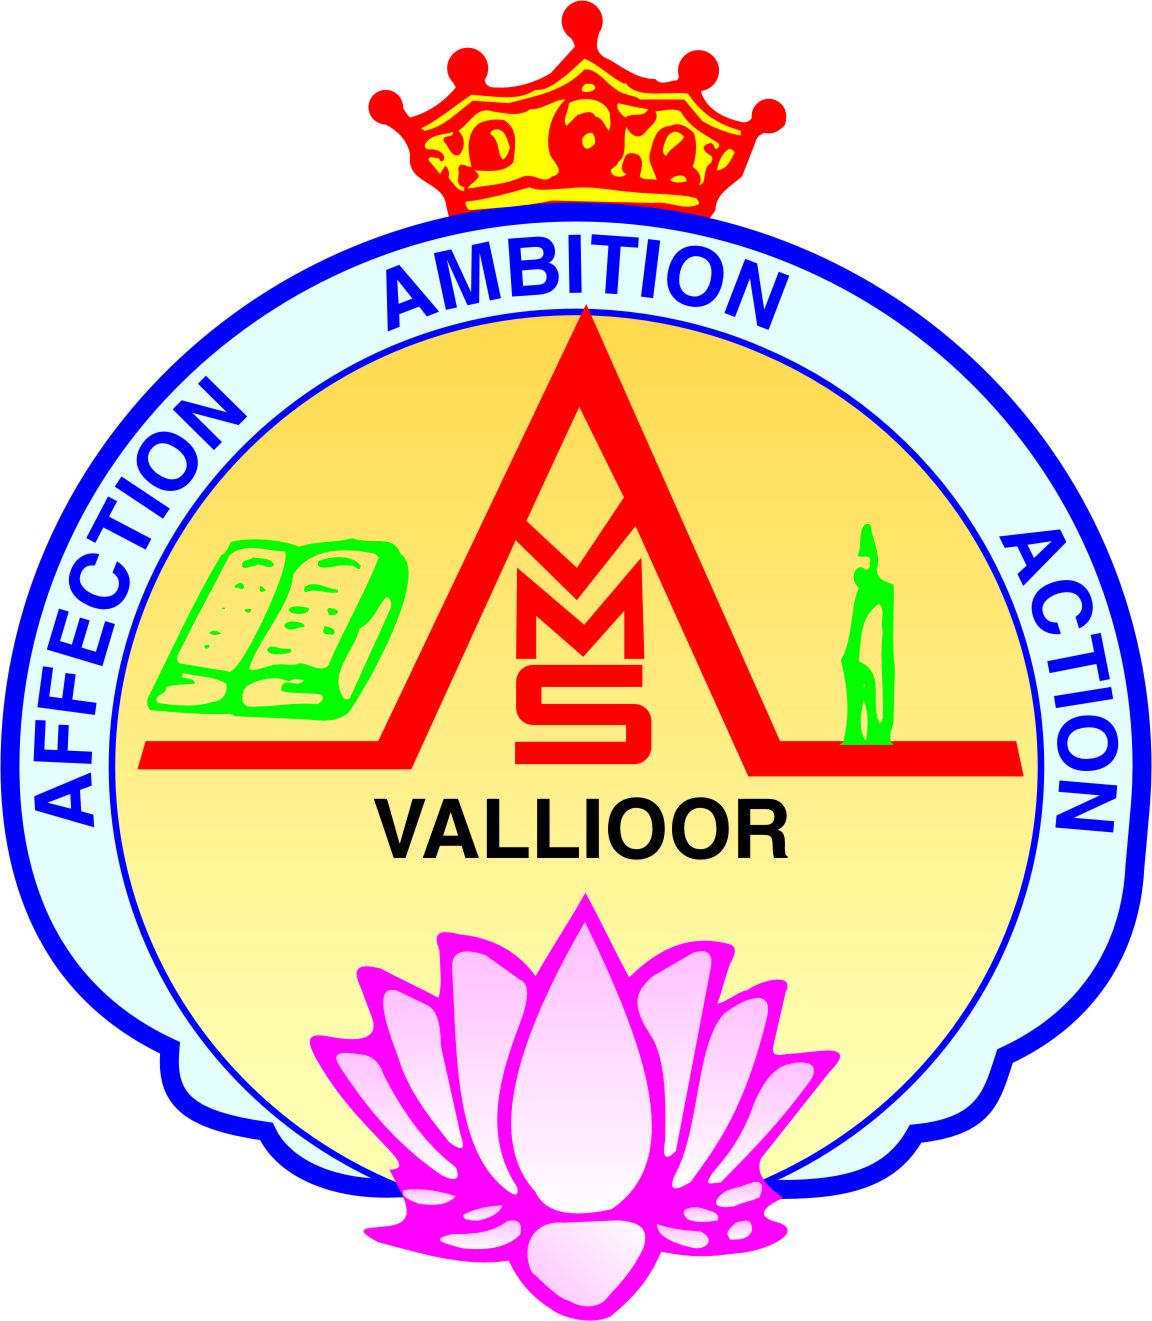 Annai School - Vallioor